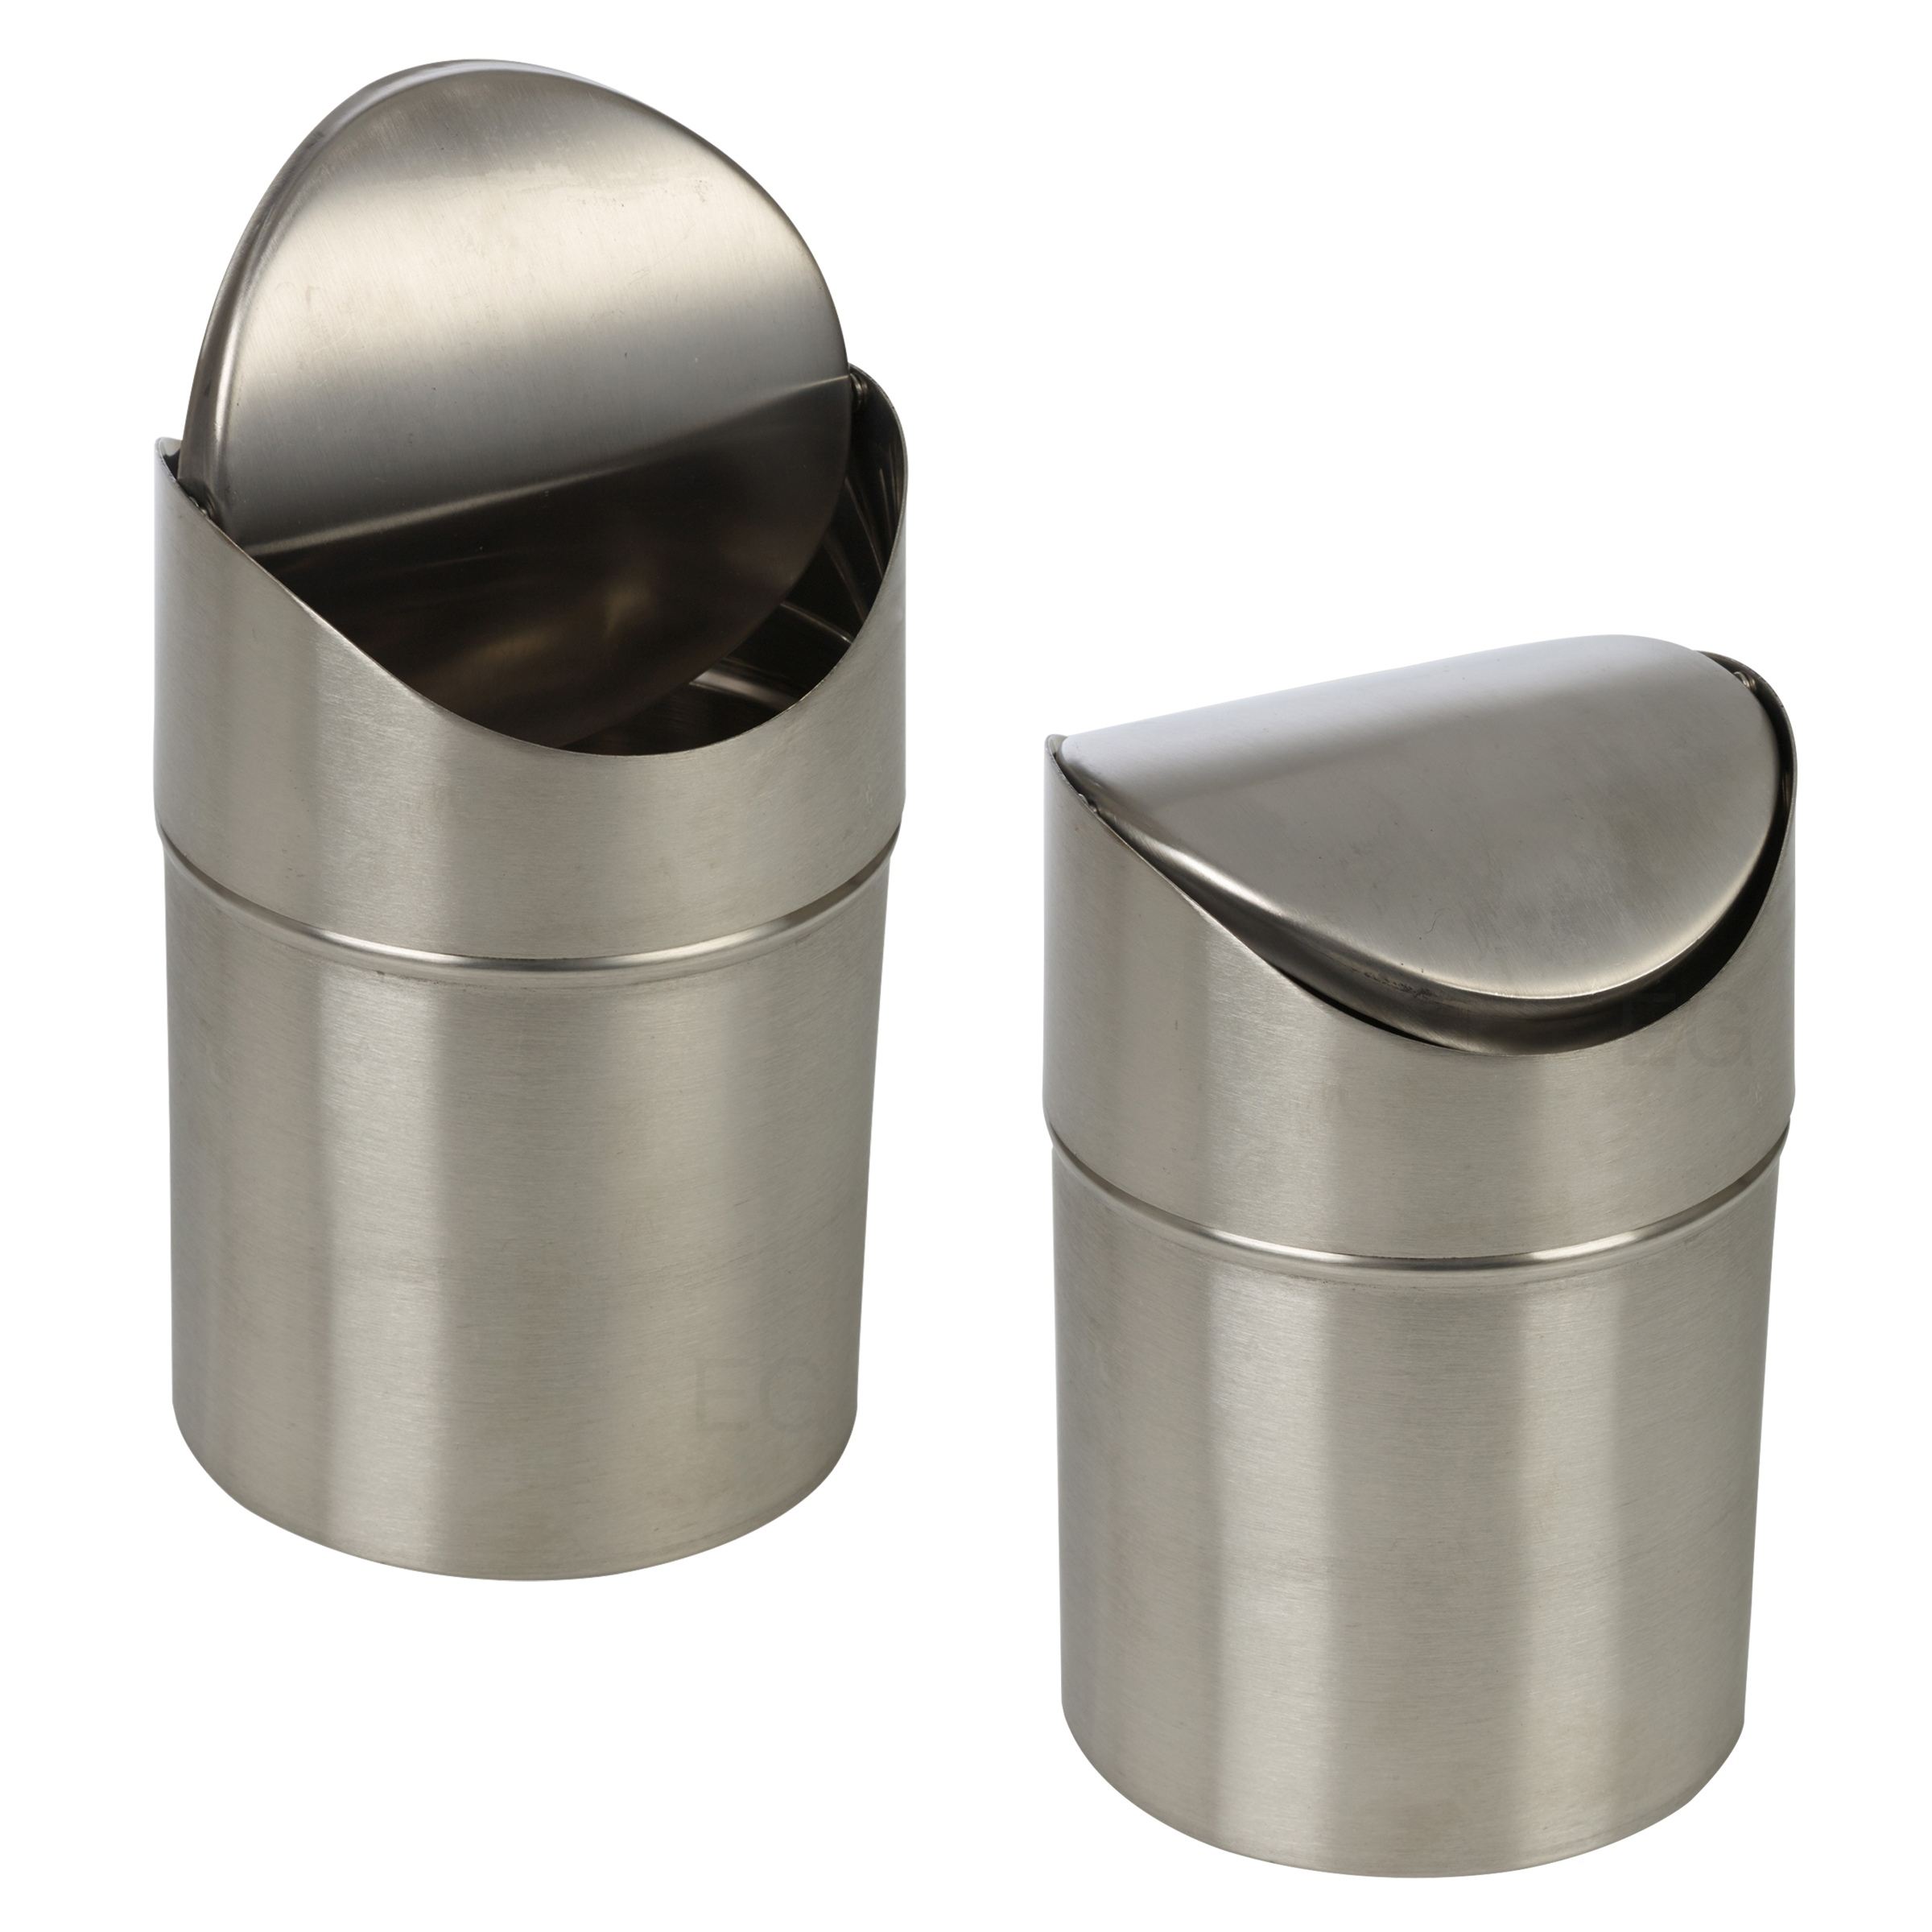 Stainless Steel 1 5l Small Recycling Bin Swing Lid Kitchen